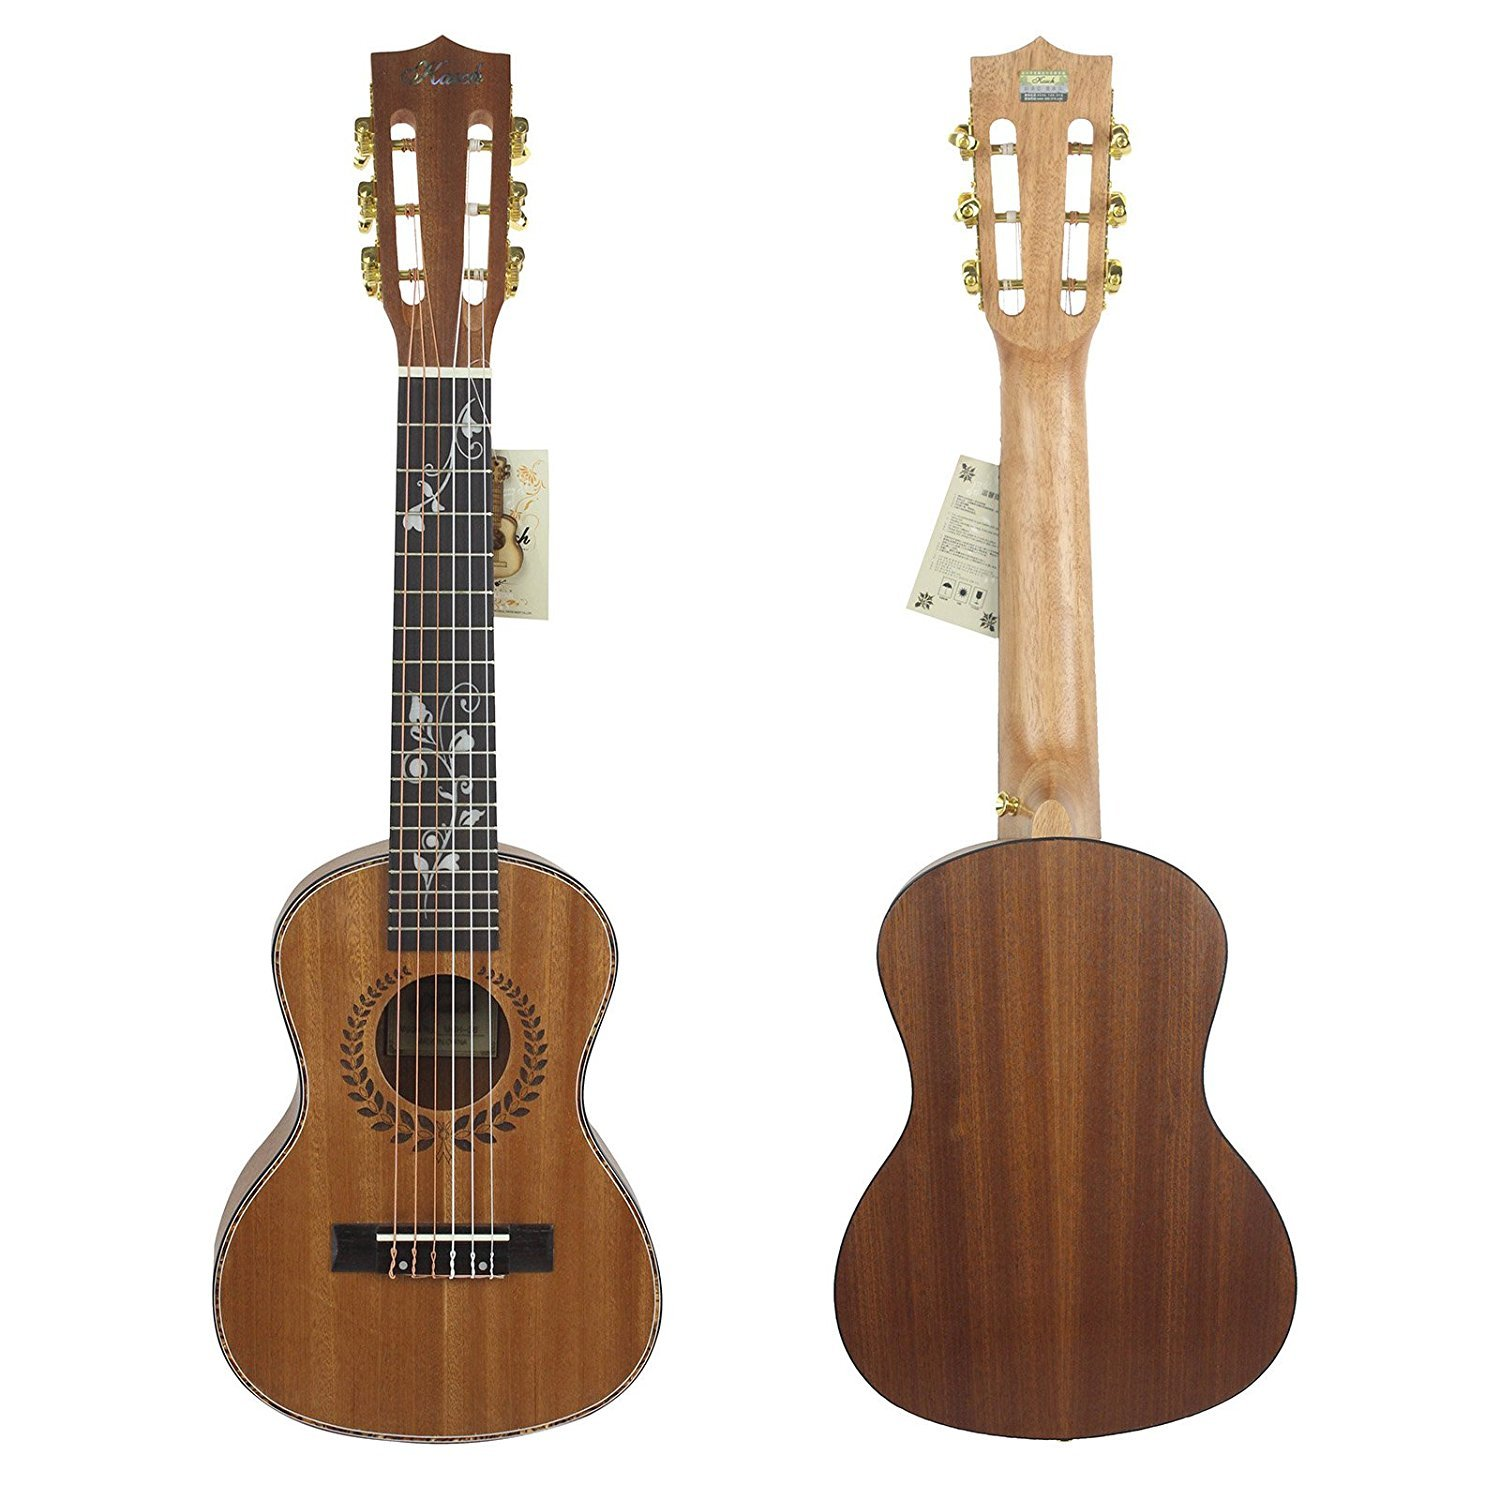 telisii 28 guitalele guitarlele guilele travel guitar